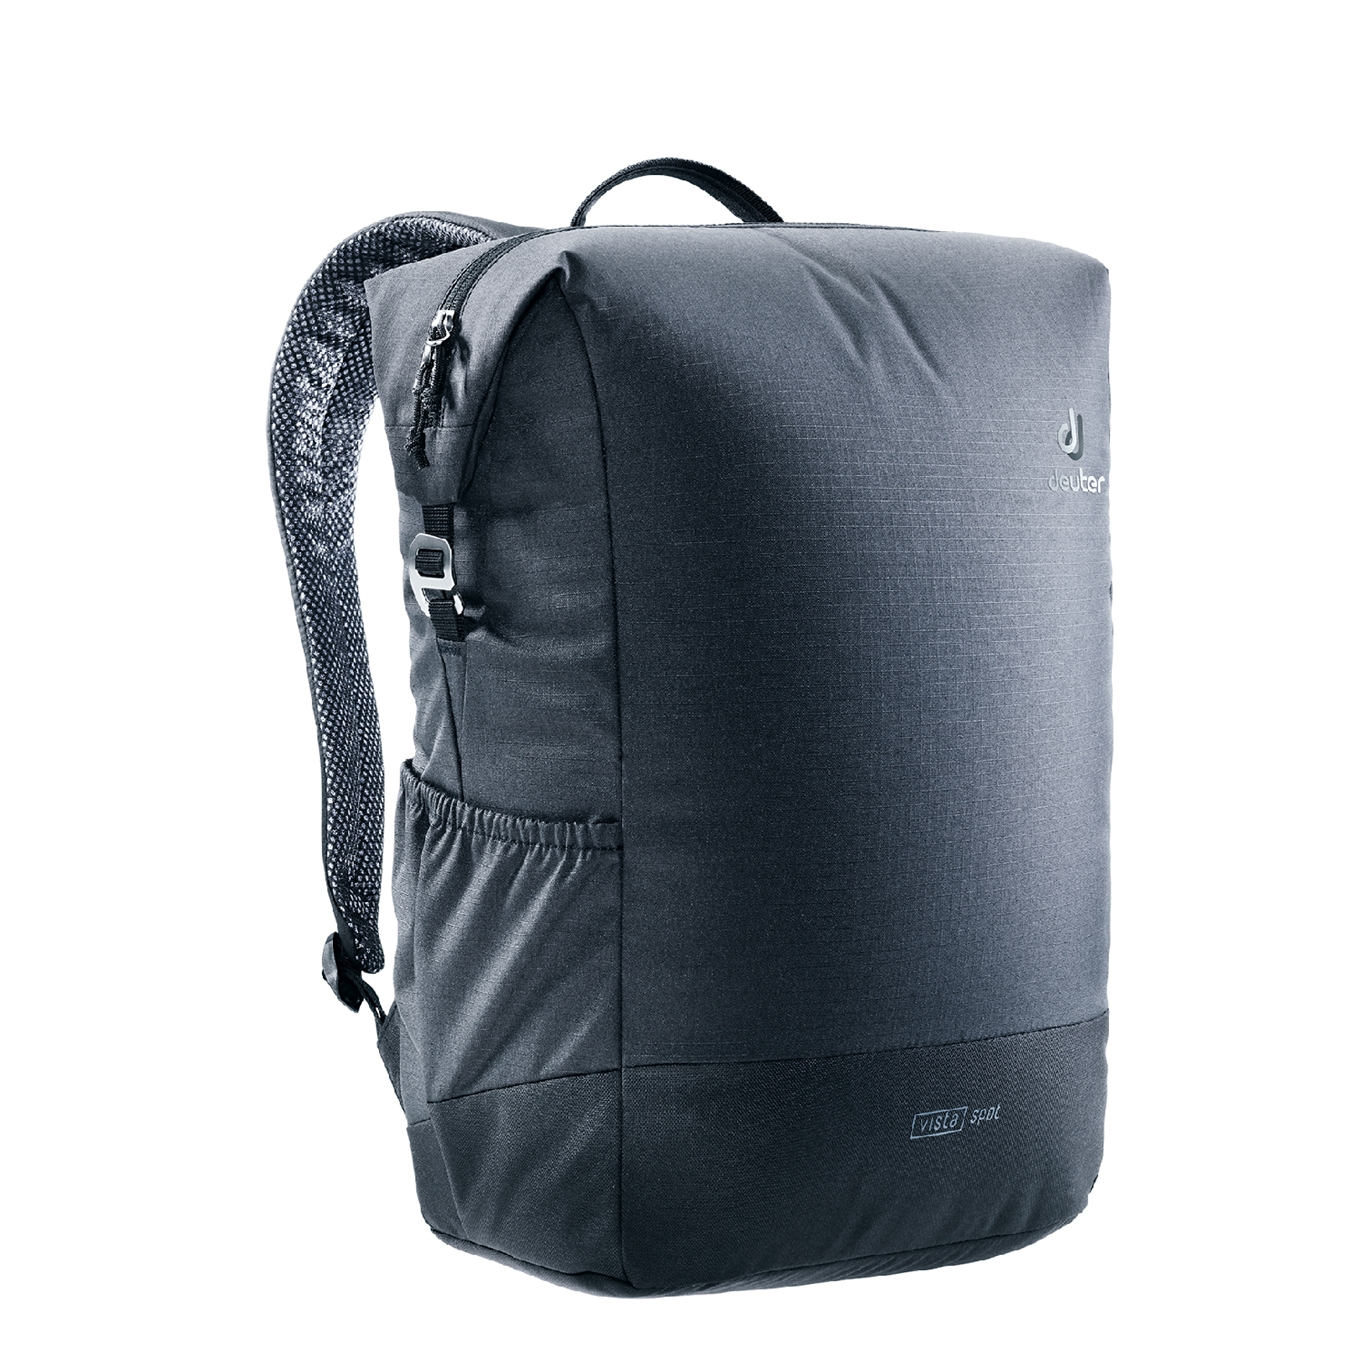 Deuter Vista Spot Daypack black backpack